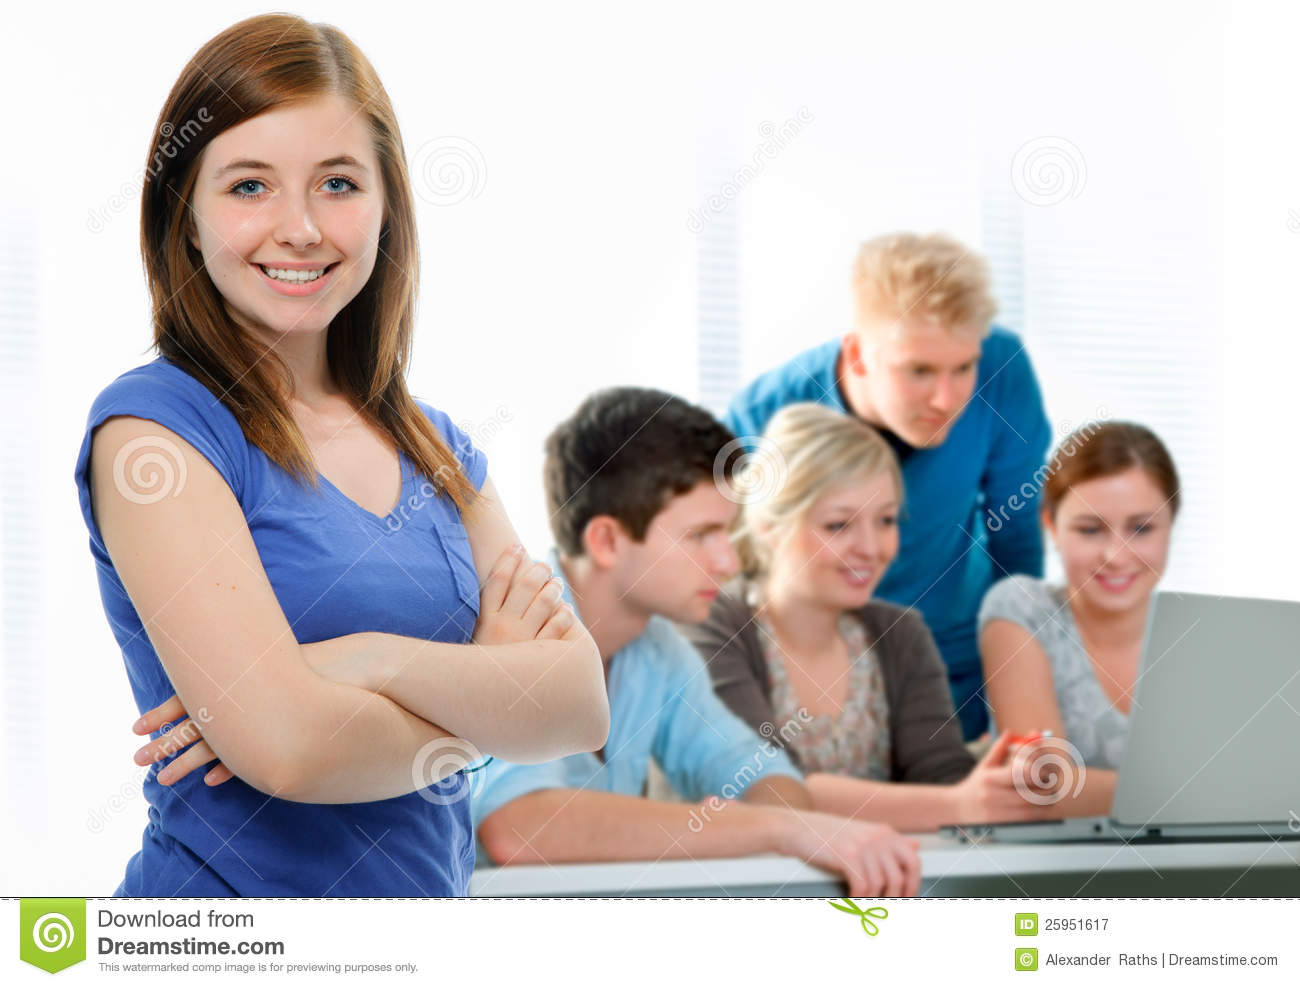 ... Free Stock Photography: Students working together in a classroom